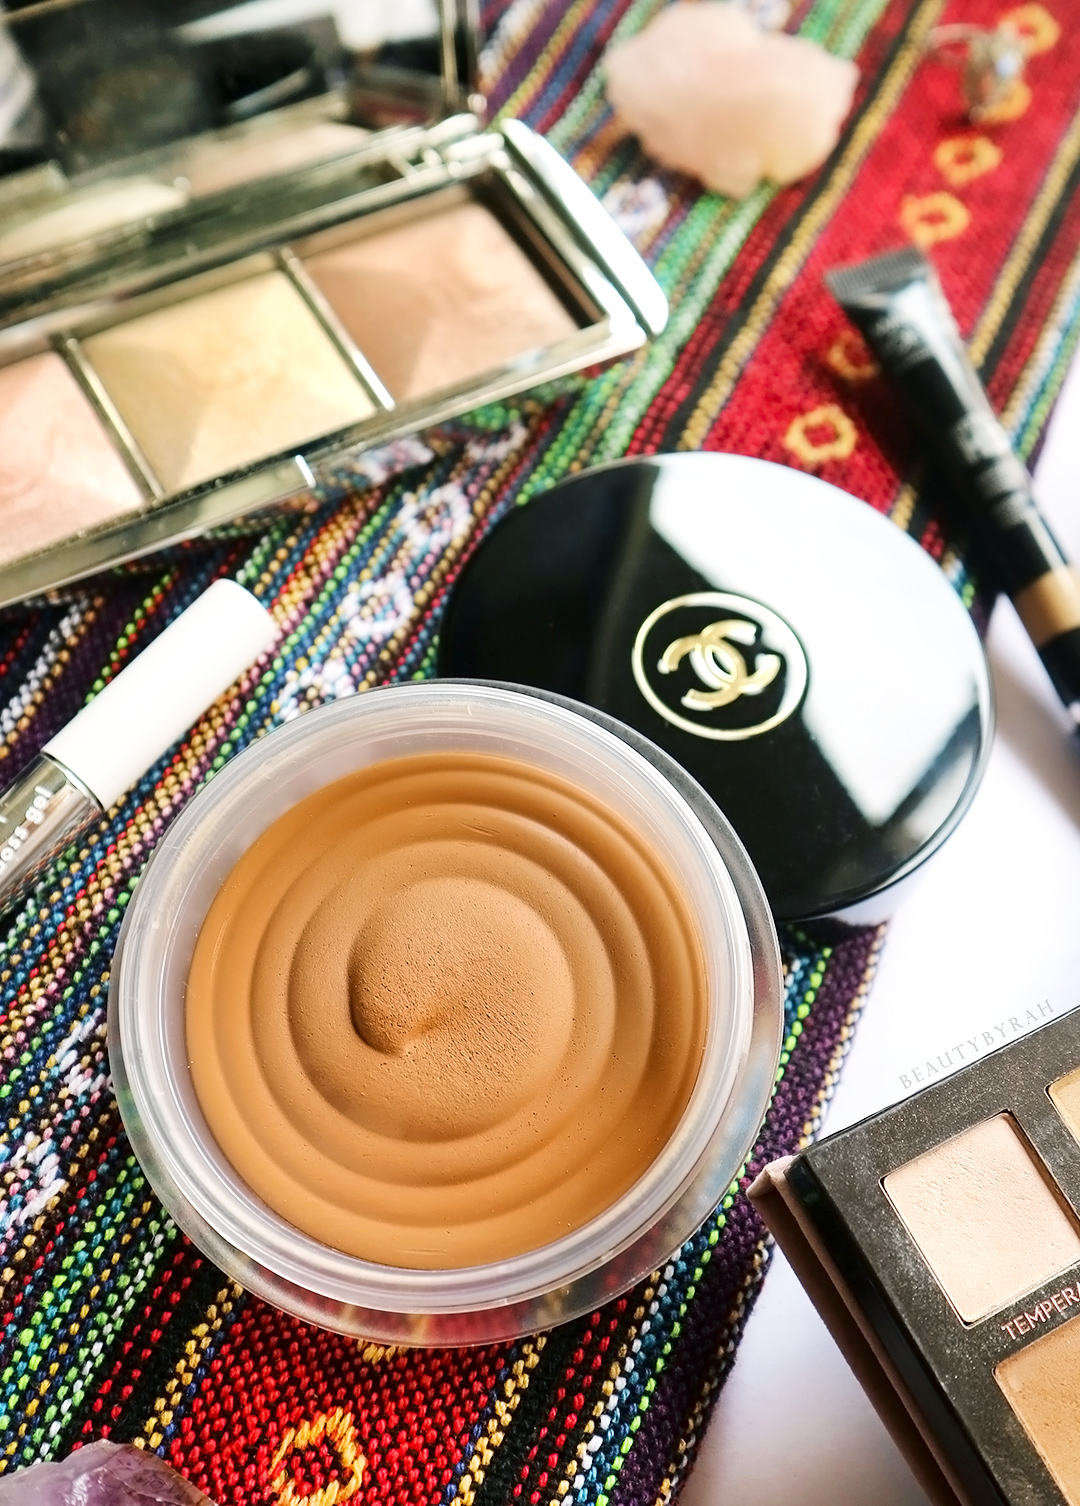 Chanel Soleil Tan De Chanel review and swatches